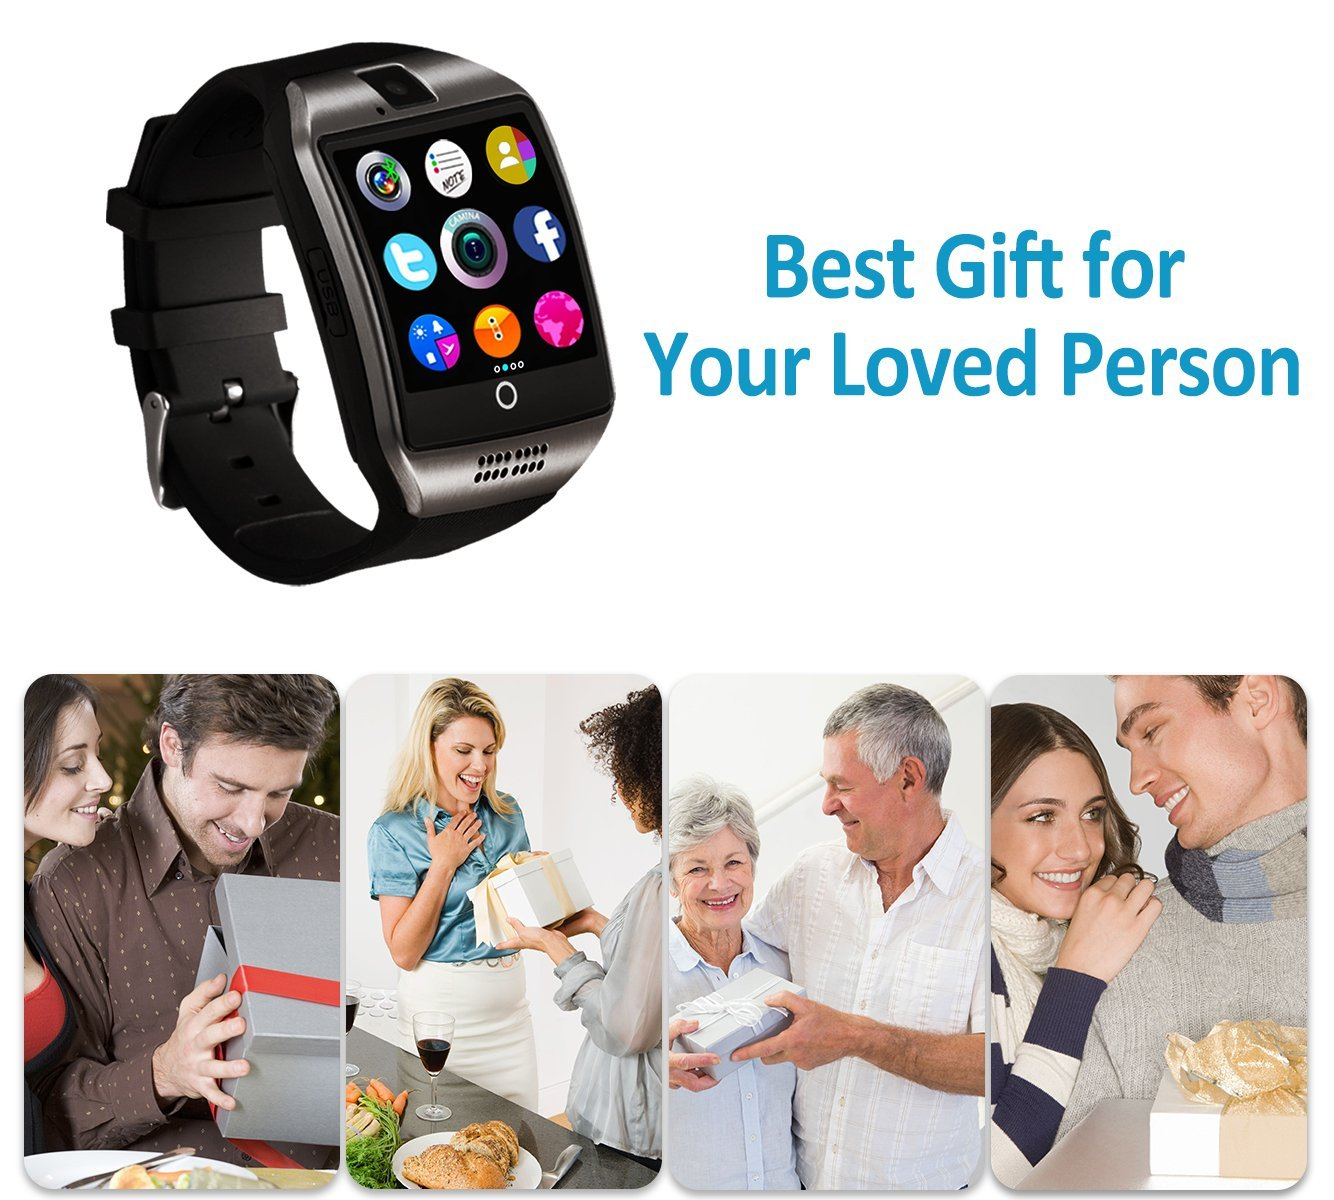 Bluetooth Smart Watch Touchscreen with Camera,Unlocked Watch Cell Phone with Sim Card Slot,Smart Wrist Watch,Waterproof Smartwatch Phone for Android Samsung IOS Iphone 7 6S Men Women Kids by Luckymore (Image #3)